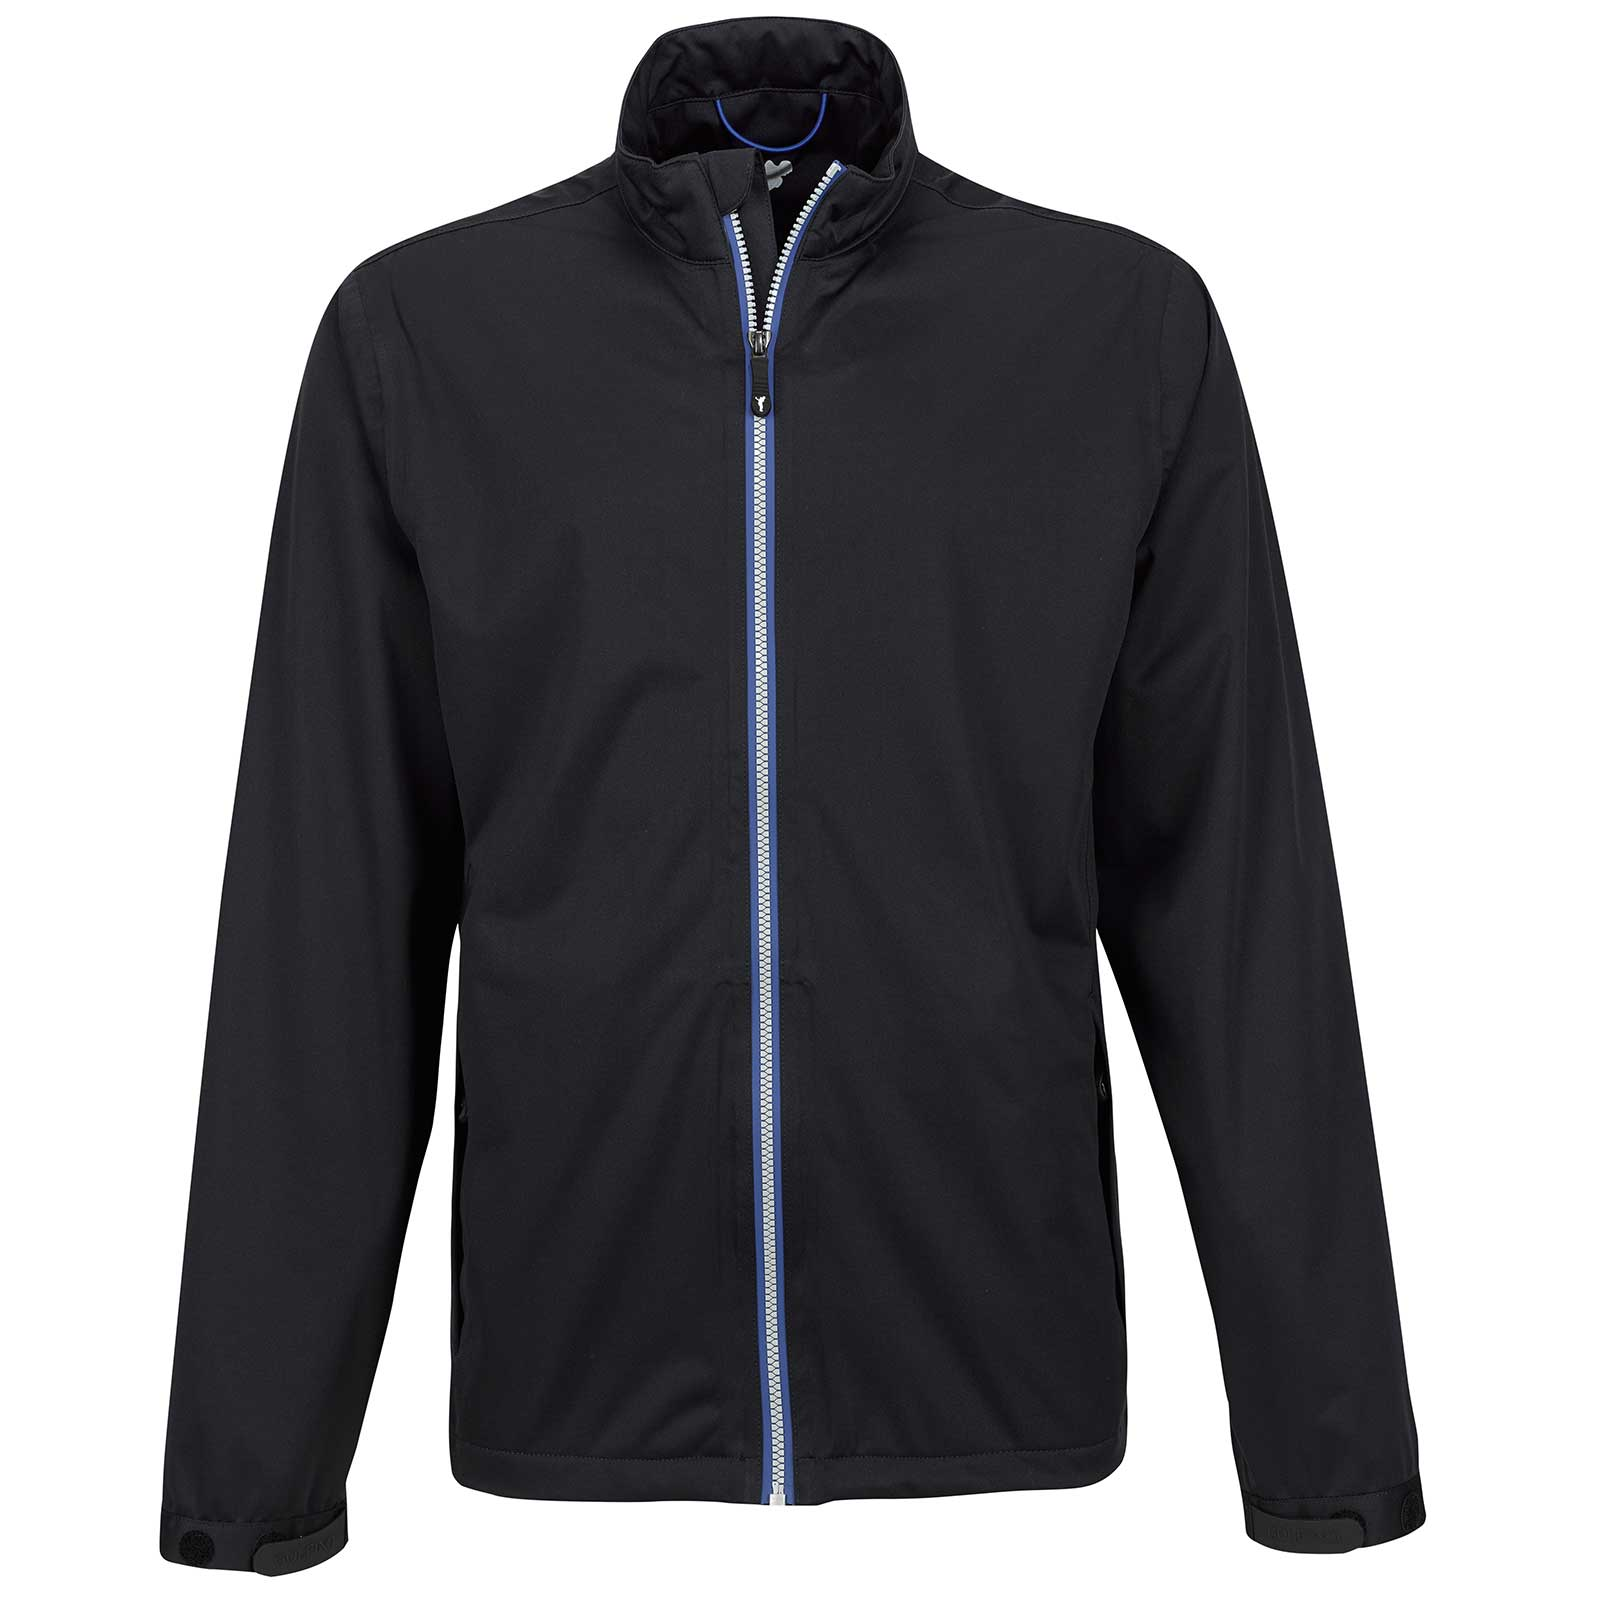 Water- and windproof men's lightweight rain jacket without hood